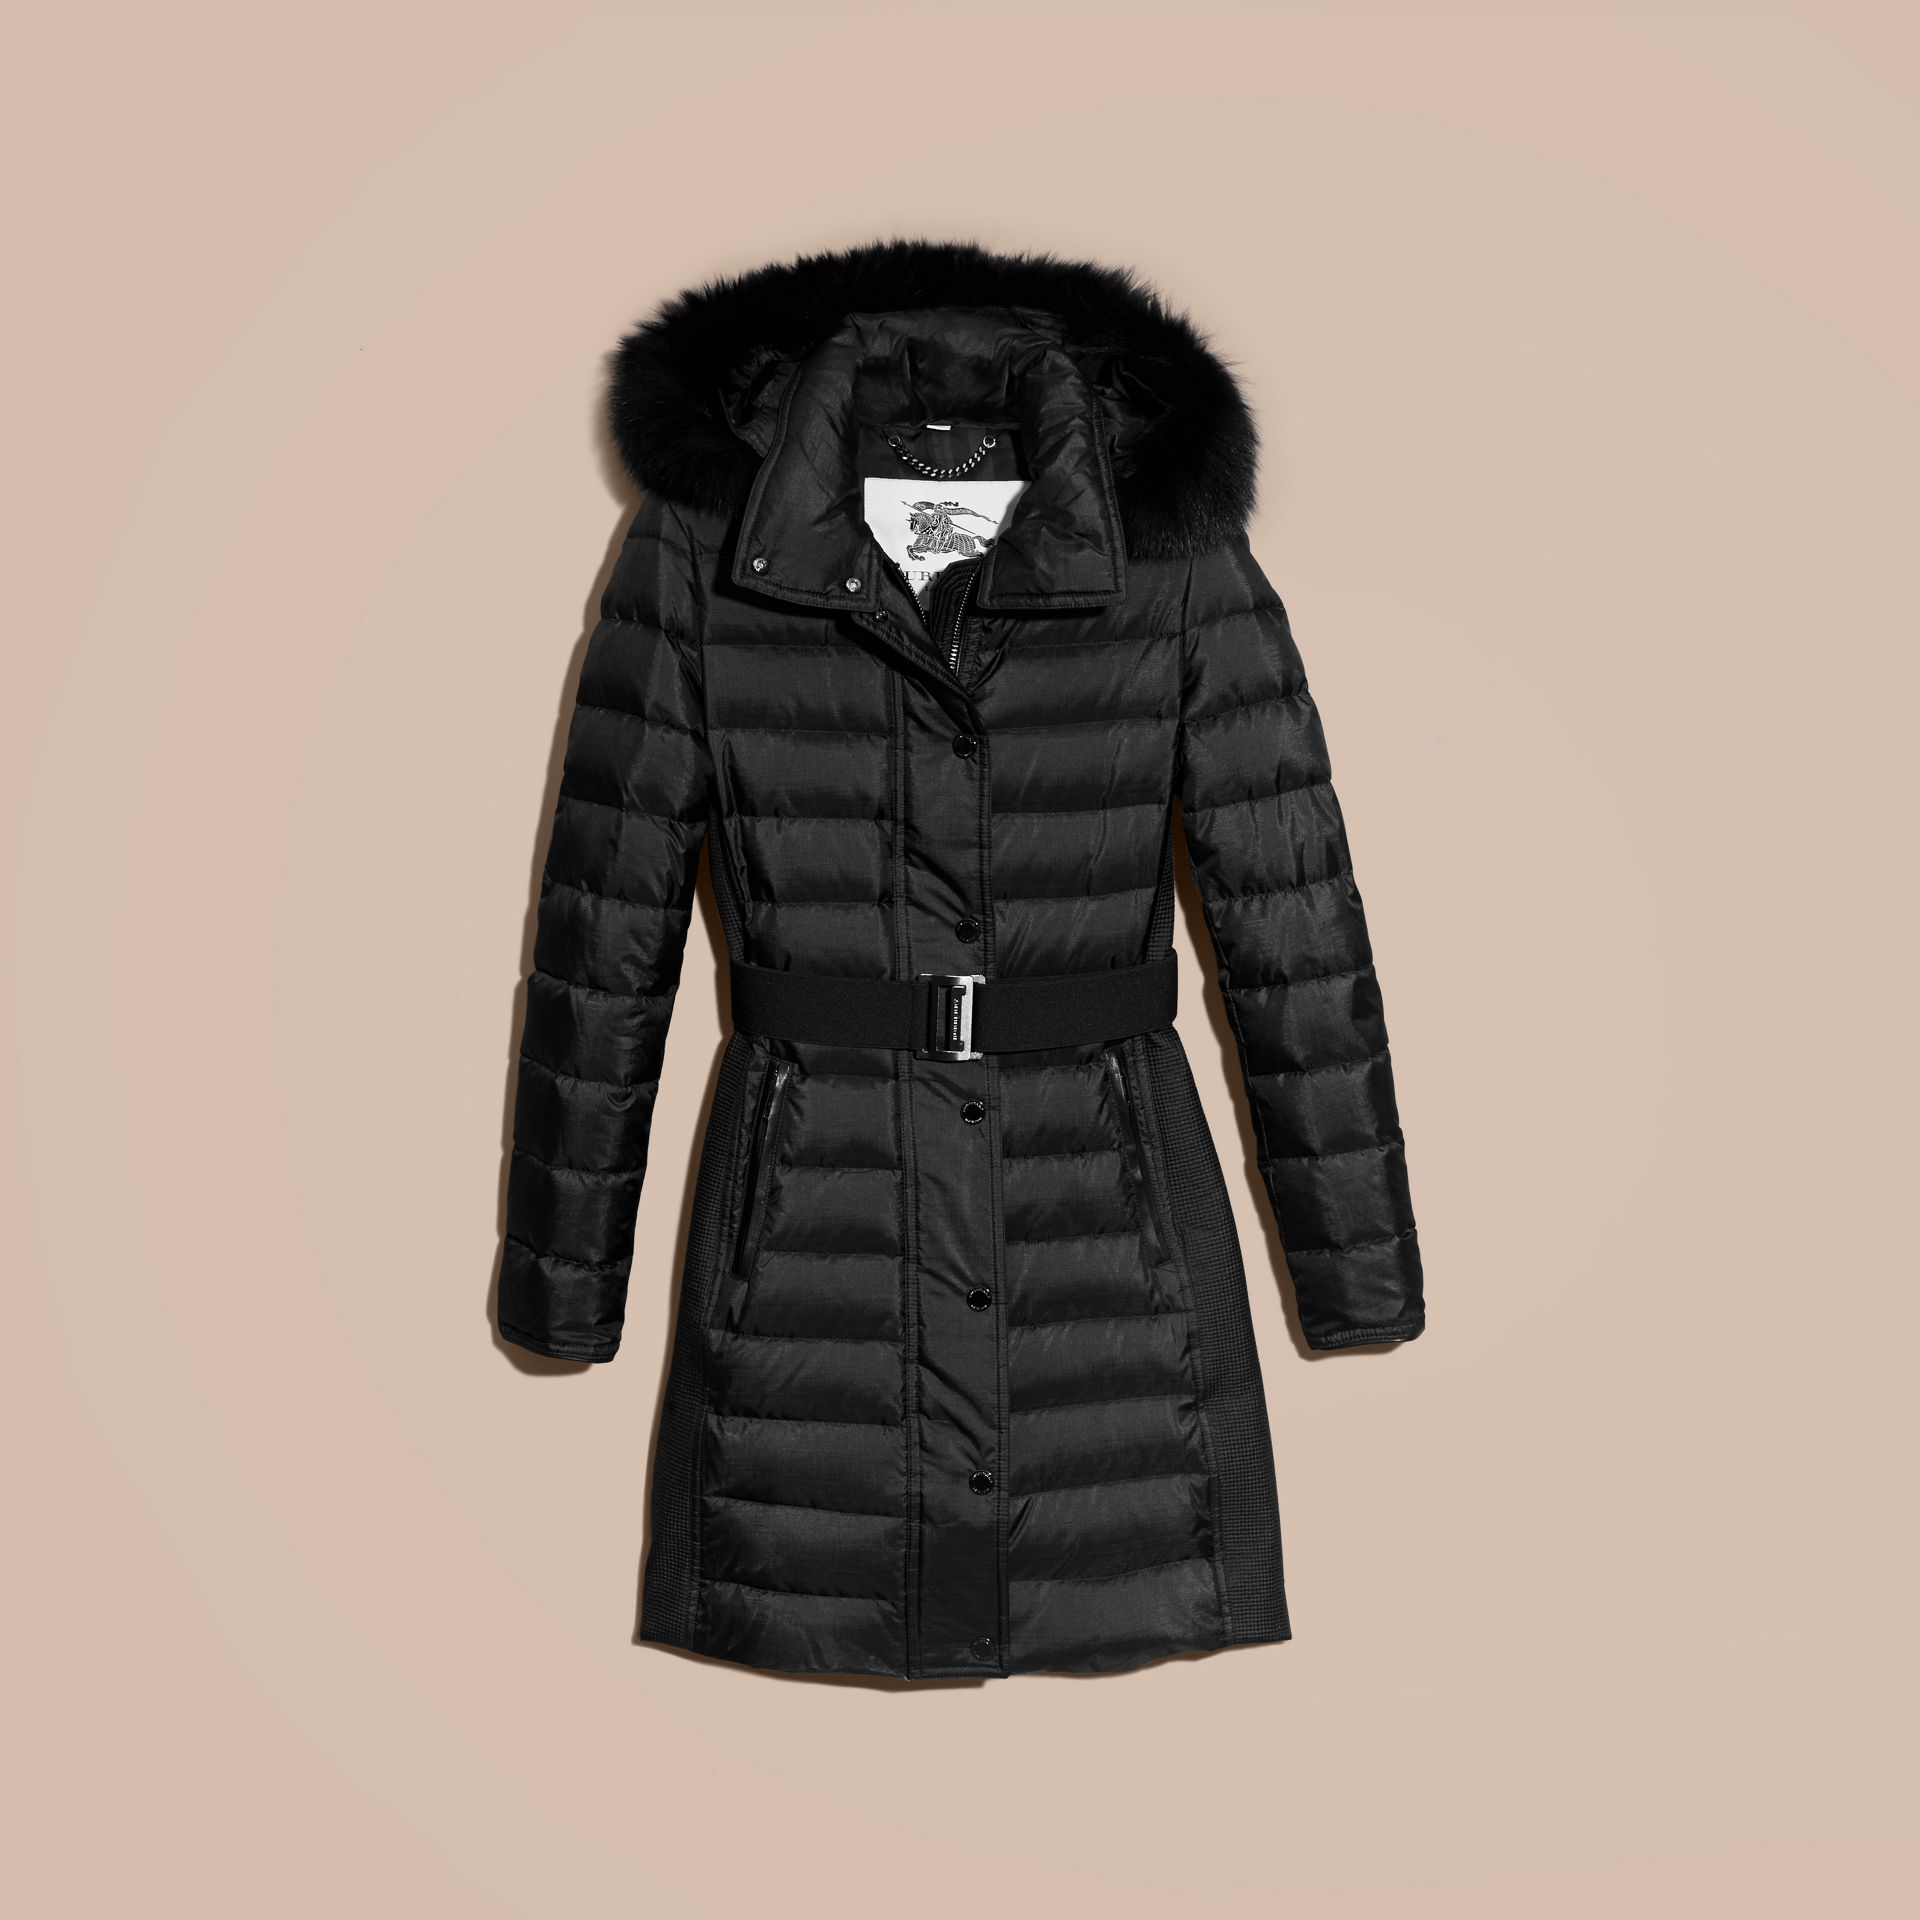 Black Down-filled Coat with Fur-trimmed Hood Black - gallery image 4